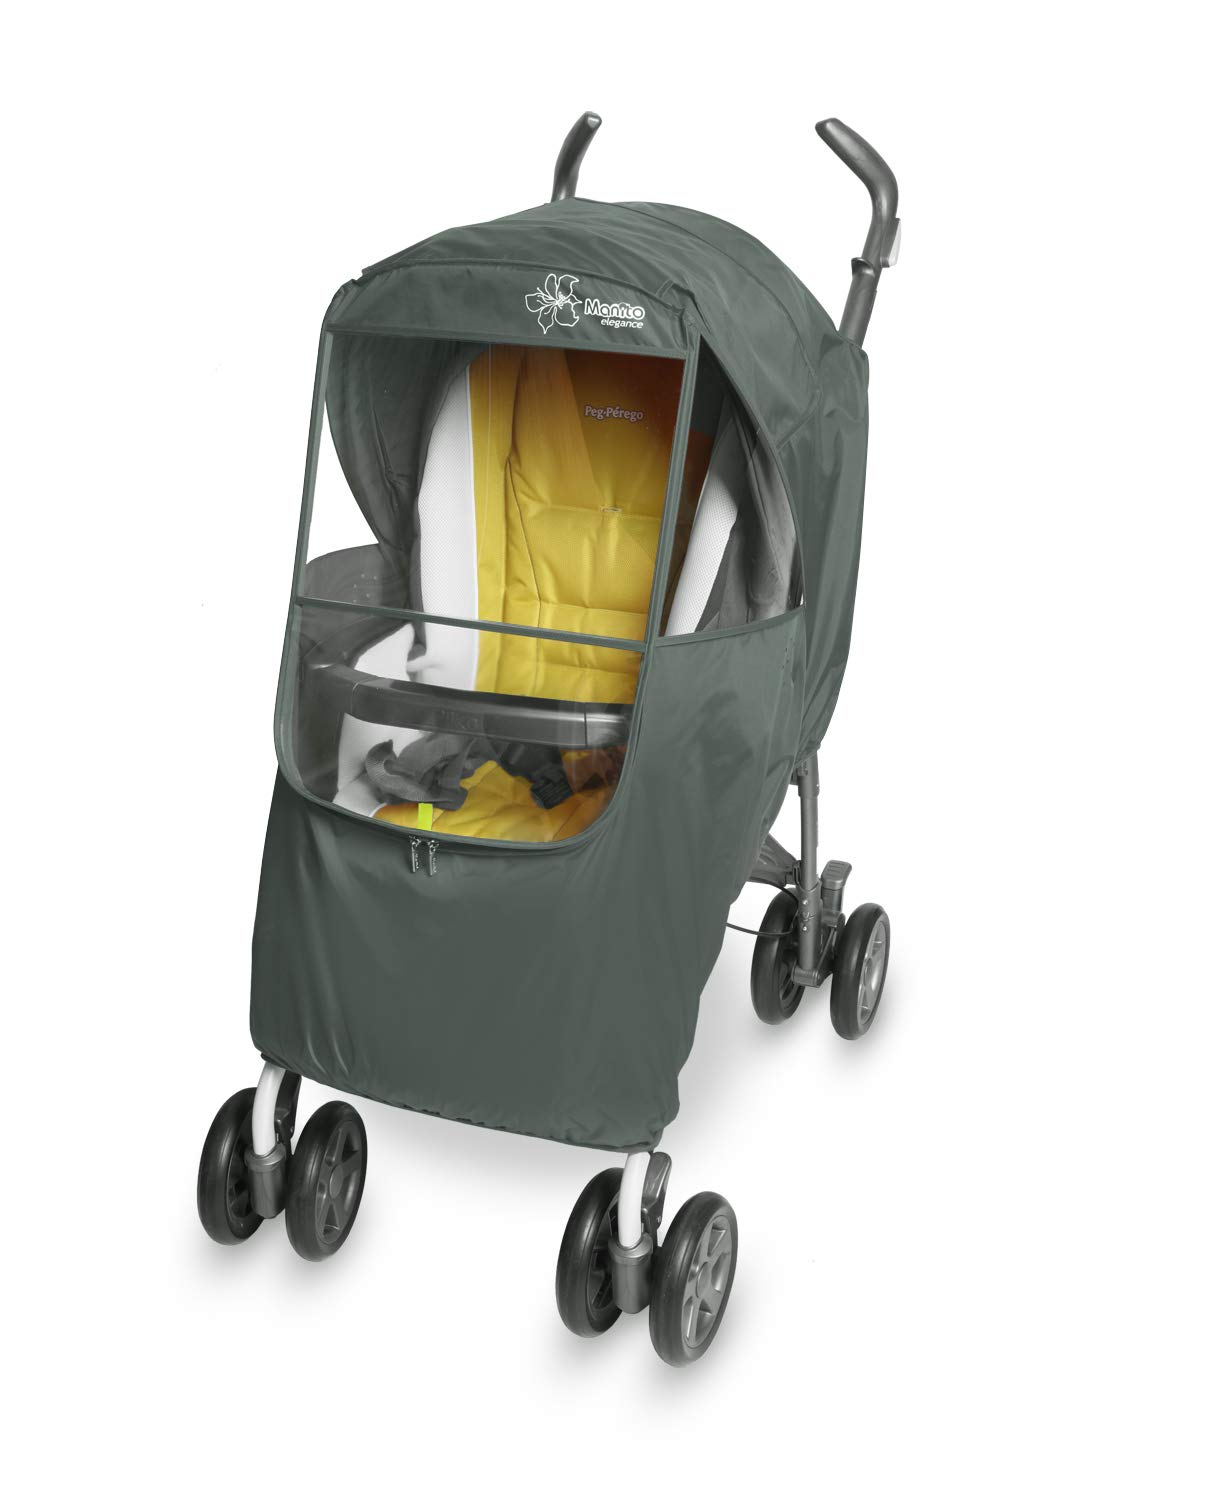 9d5e3c3780a9 Manito Elegance Plus Stroller Weather Shield   Rain Cover (Gray- 5  Available Colors)